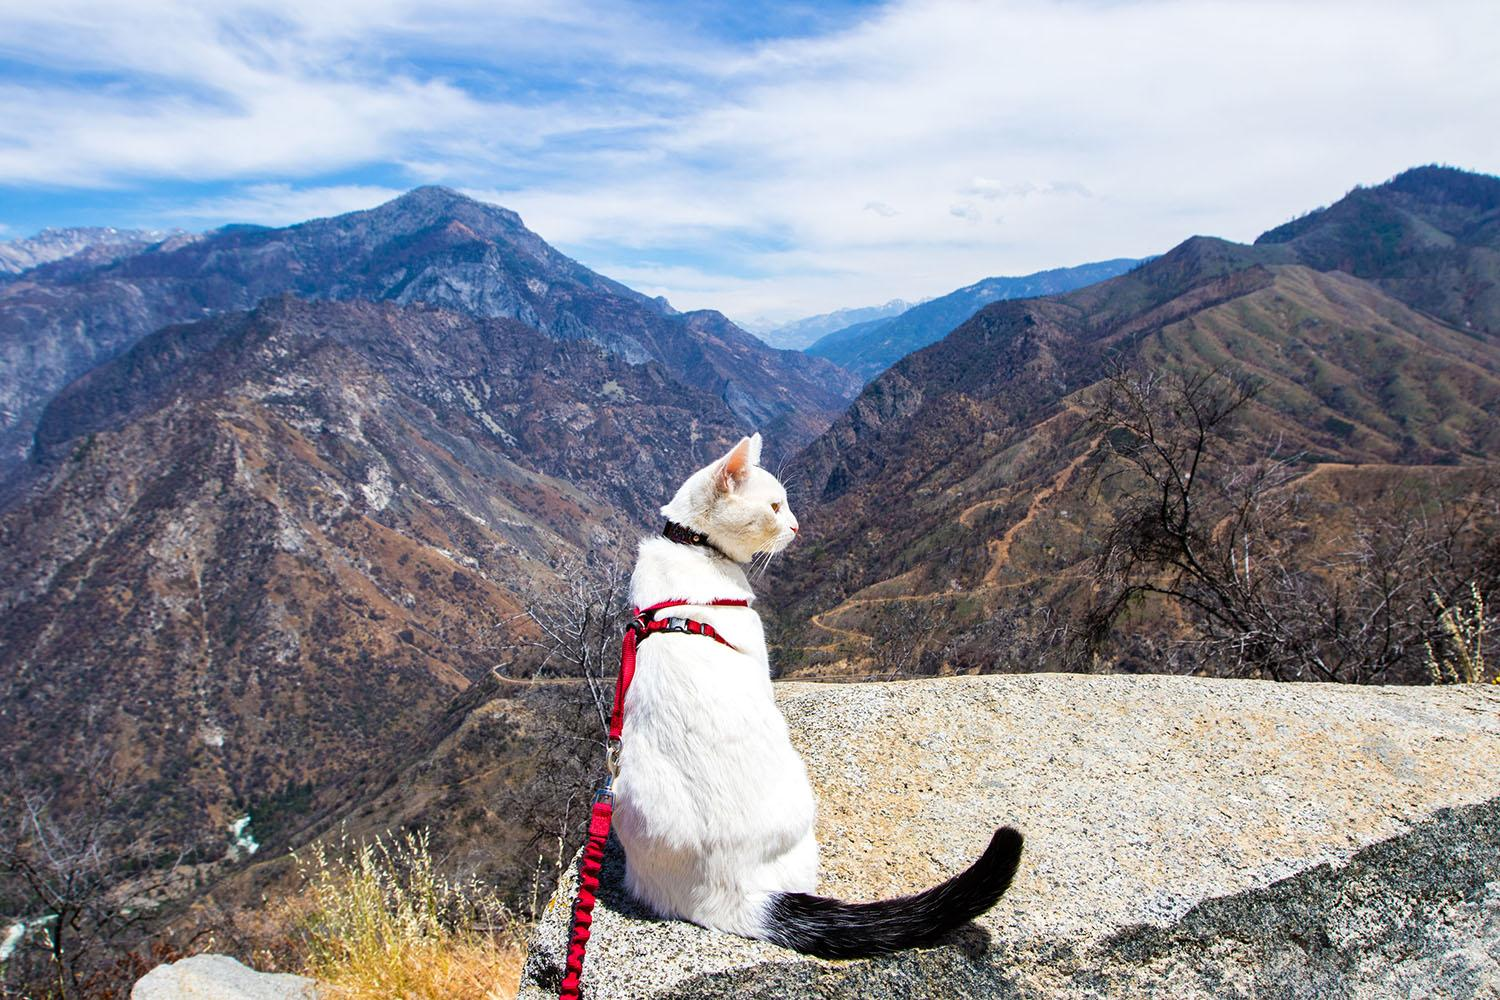 <p>Kings Canyon National Park overlook. Kings Canyon National Park is adjacent to Sequoia National Park in California's Sierra Nevada mountains. (Photo: Our Vie / Caters News) </p>